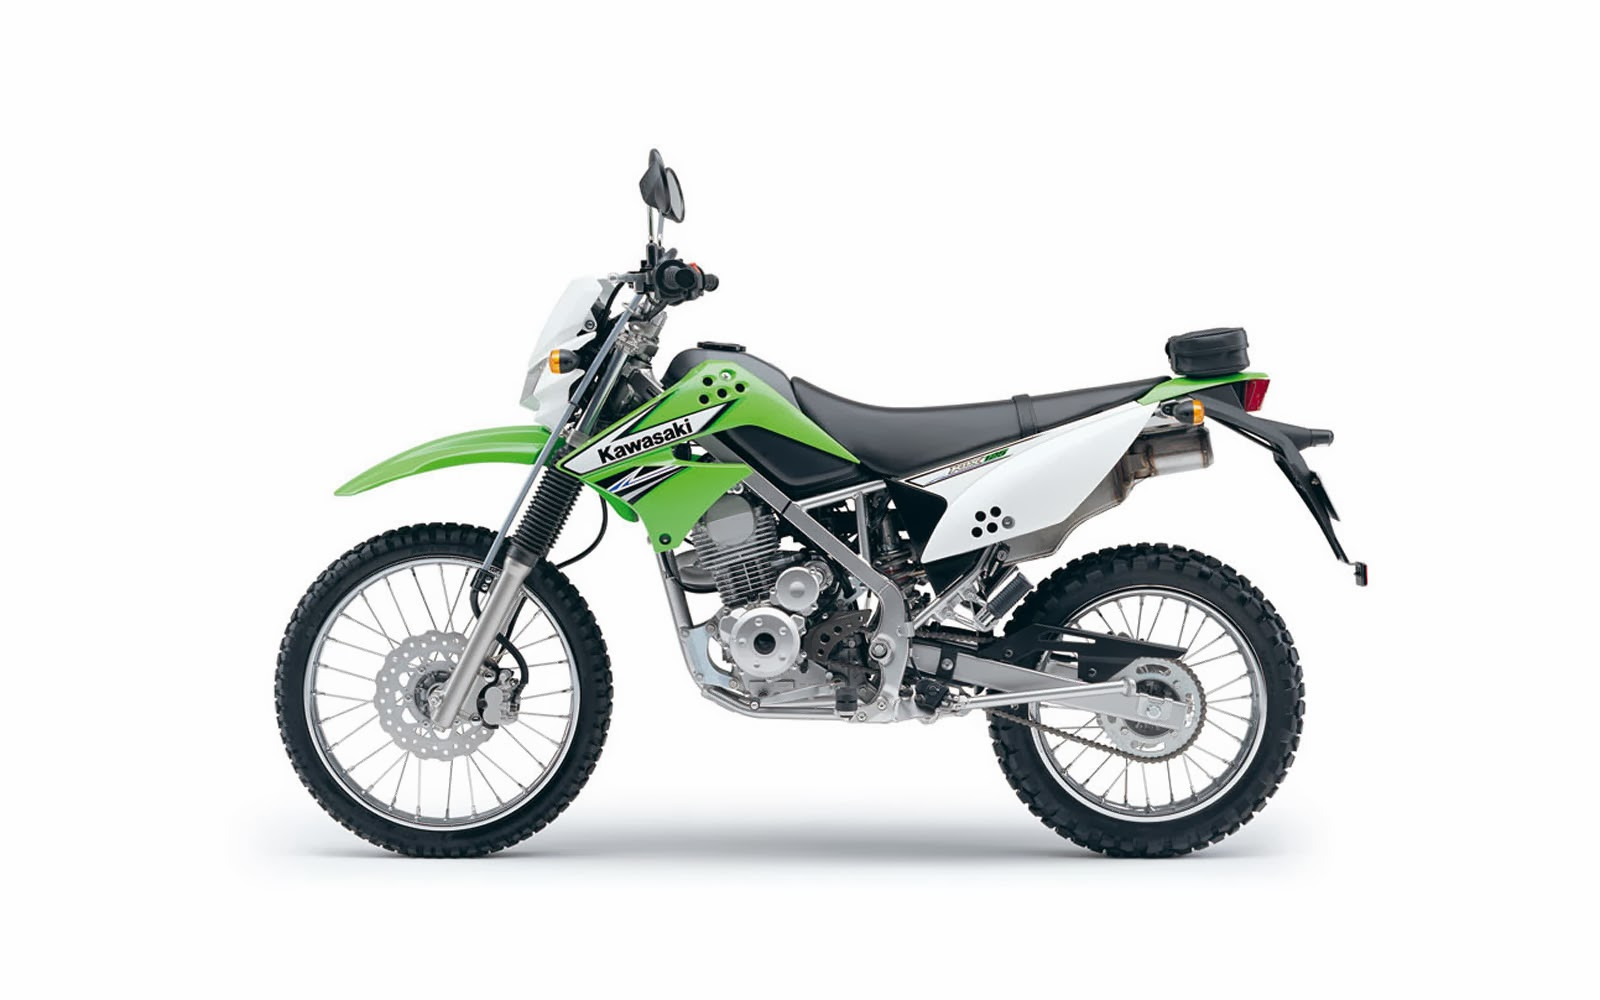 Free Wallpapers Of Cars And Bikes For Desktop Wallpapers Kawasaki Klx 125 Wallpapers